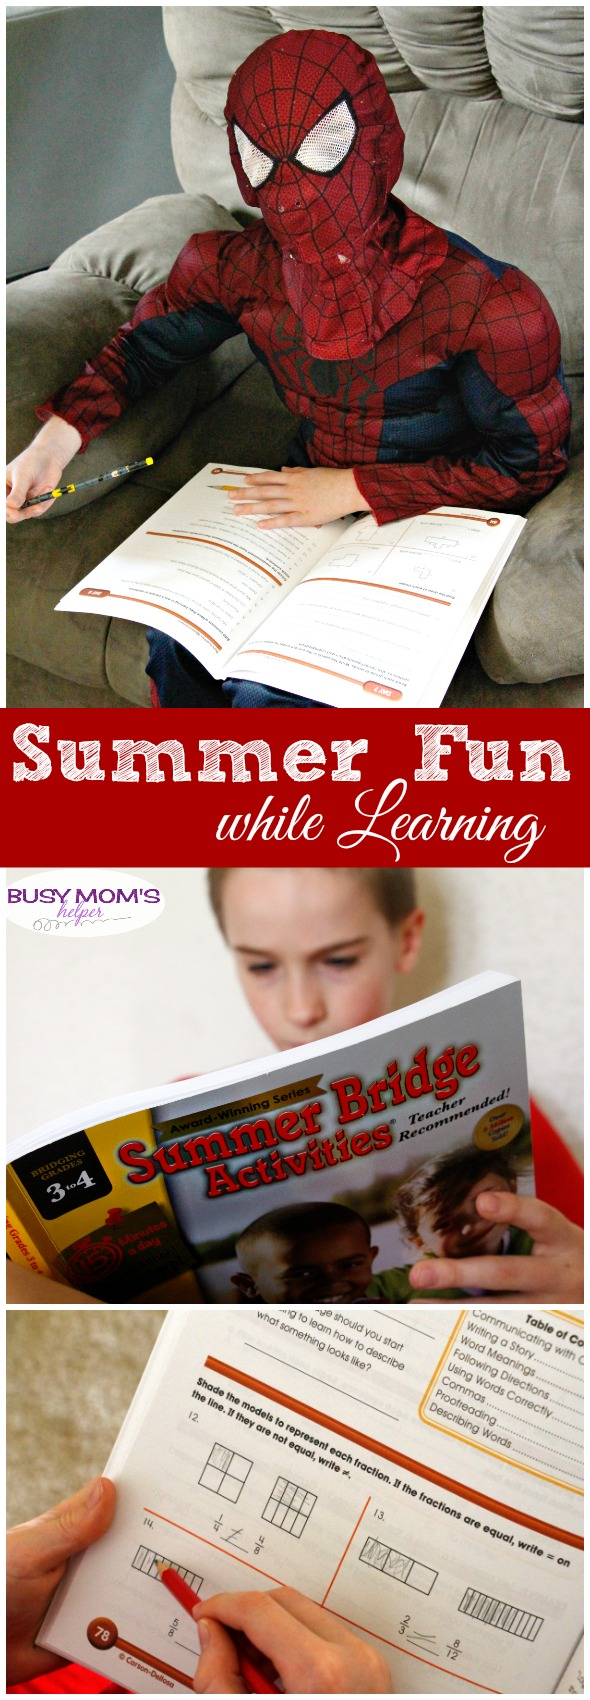 Lots of easy fun Summer Learning! Just 15 minutes a day helps keep minds sharp & ready for the next school year #AD #CarsonDellosaEducation #IC